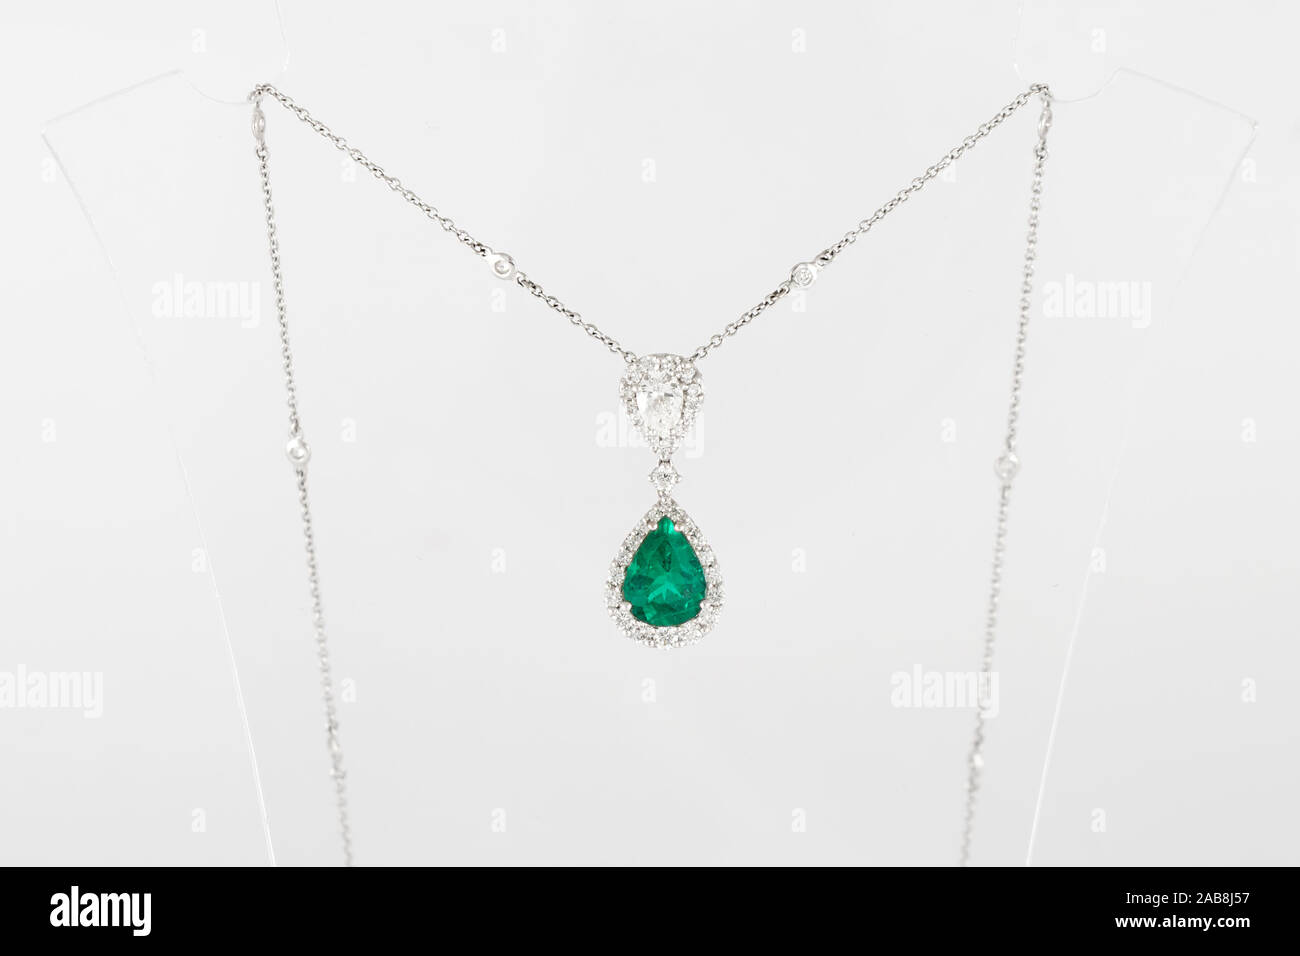 Necklace Diamond High Resolution Stock Photography And Images Alamy